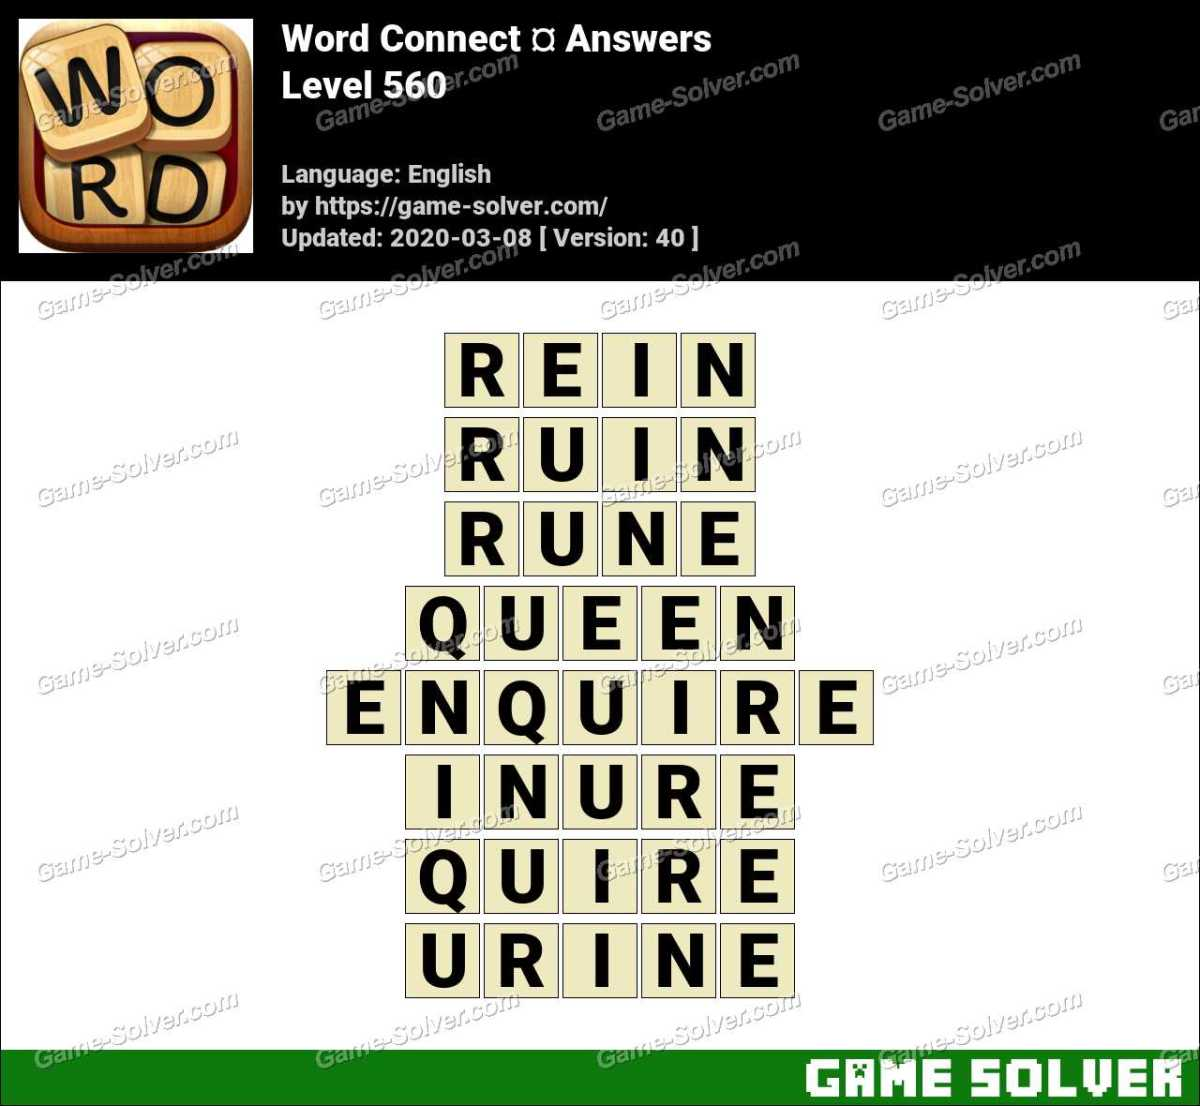 Word Connect Level 560 Answers